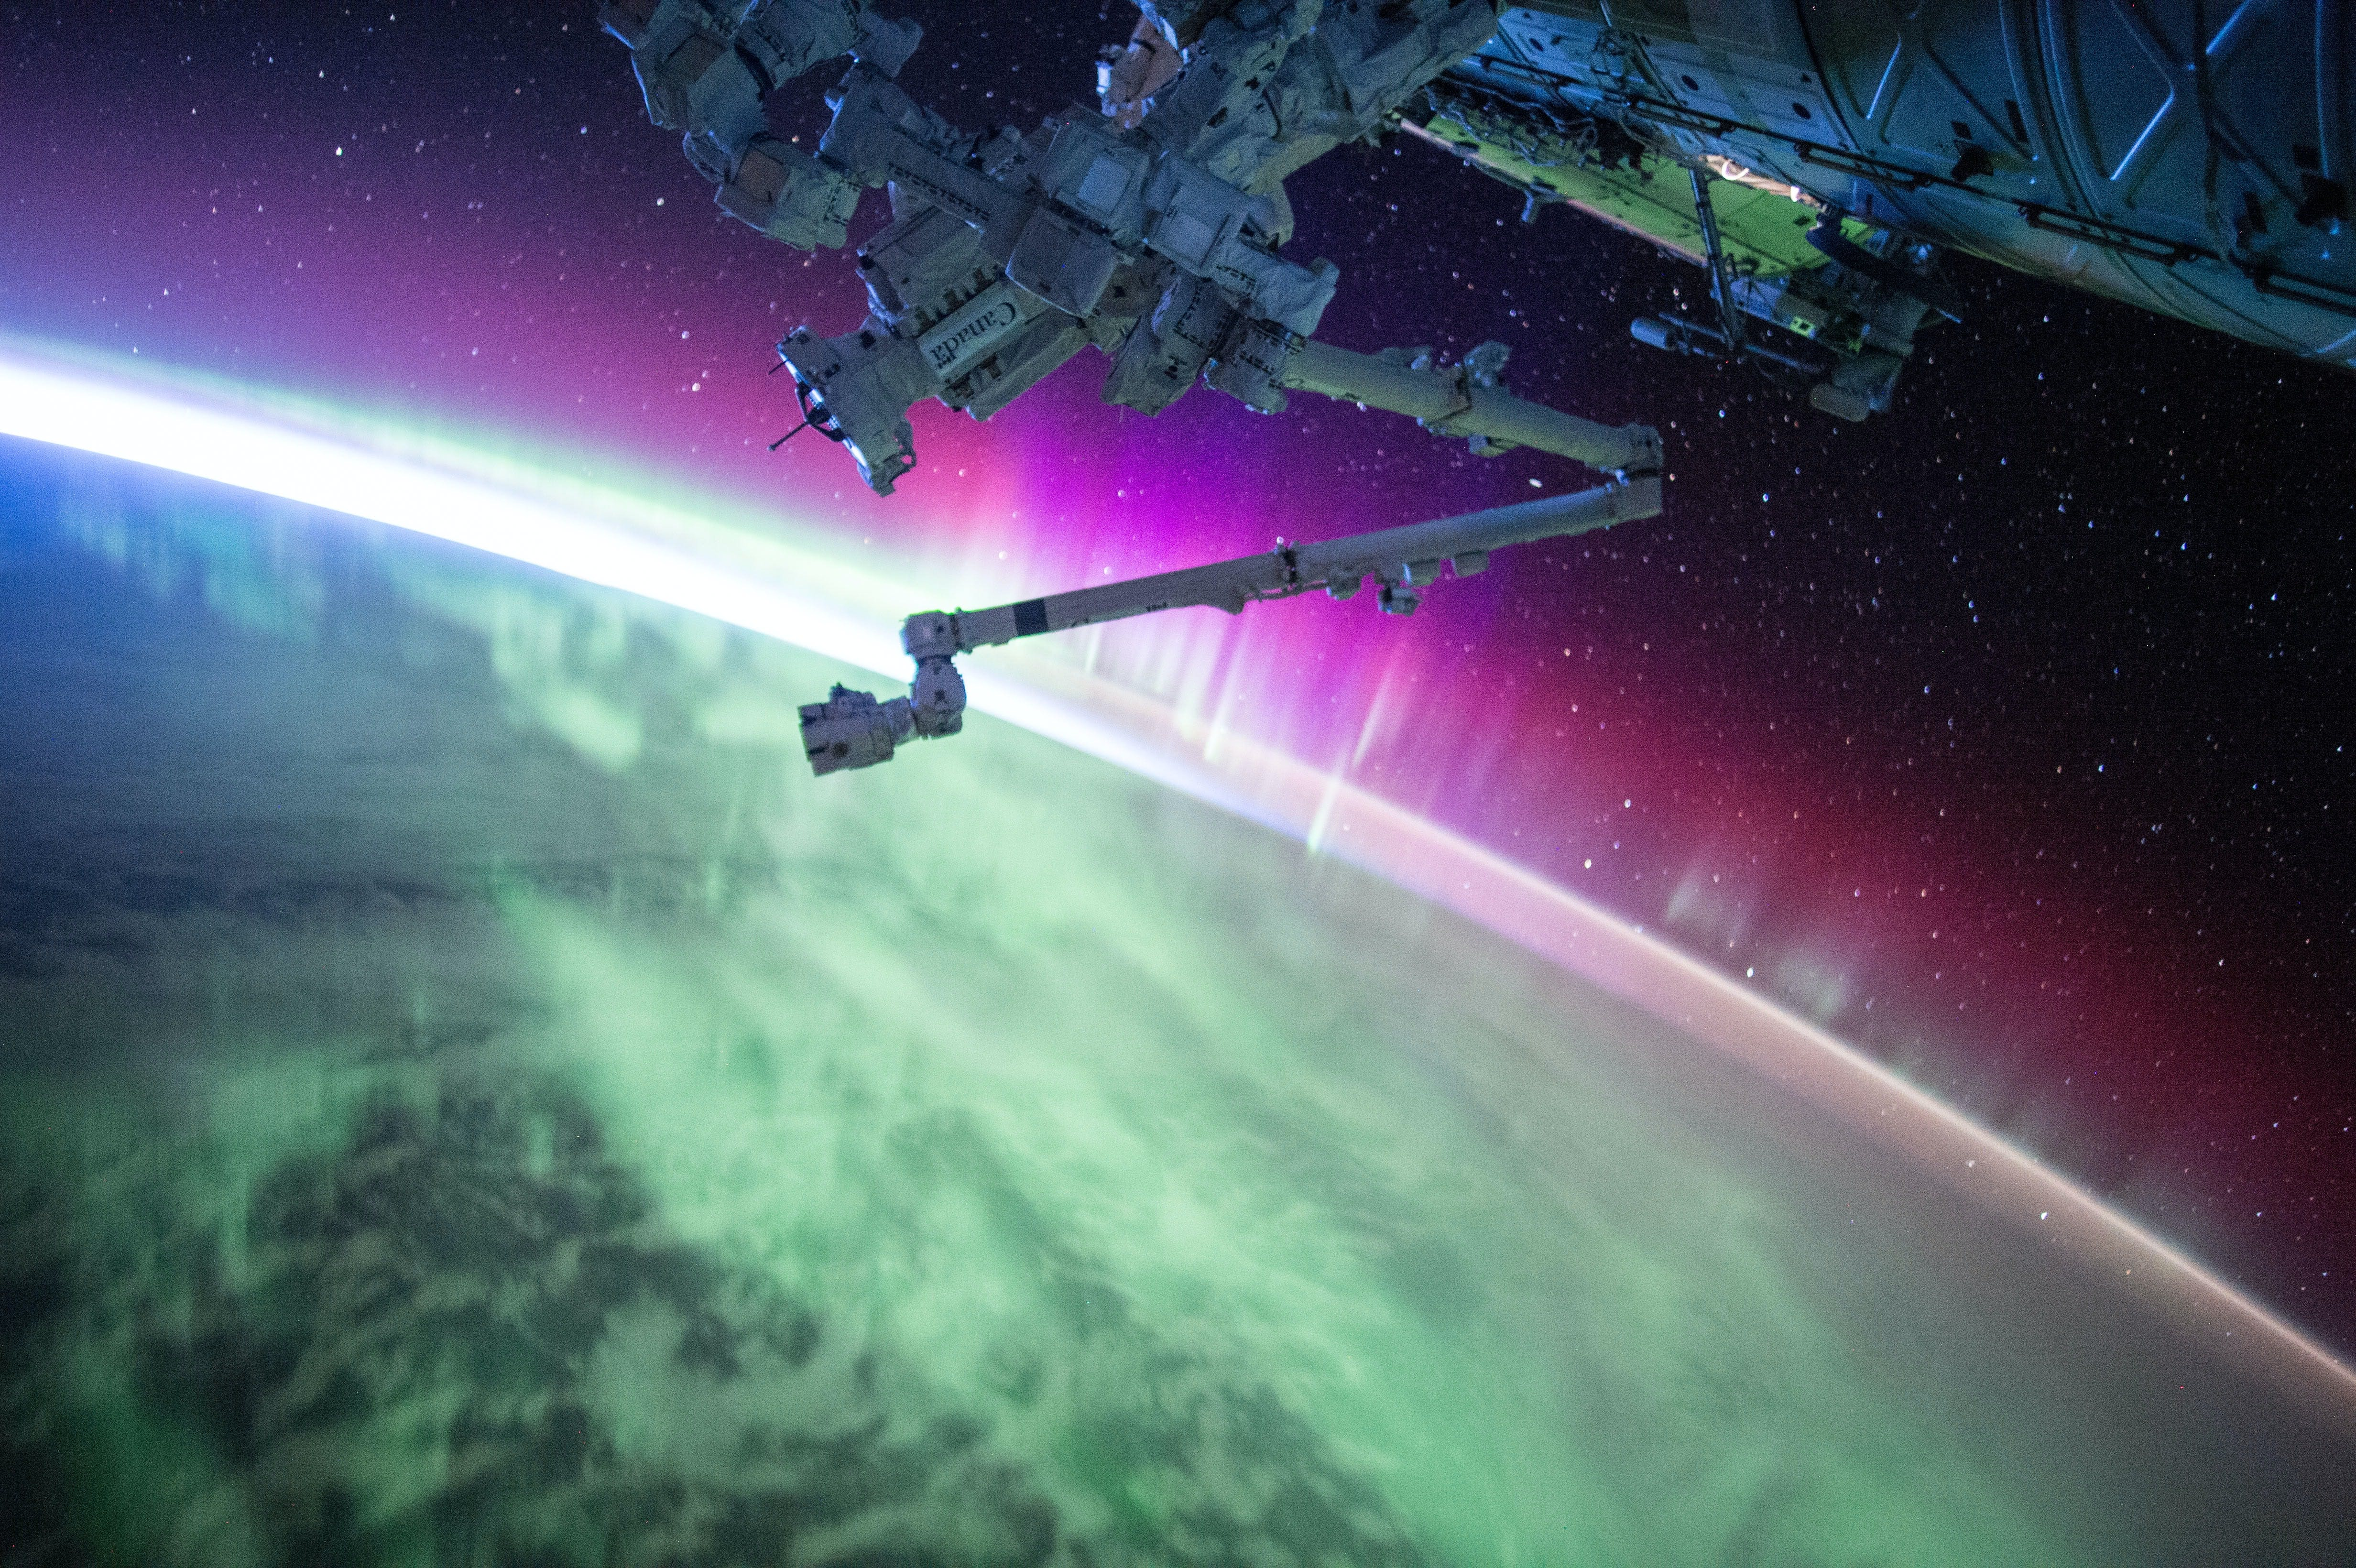 NASA spaceship arm extended above earth